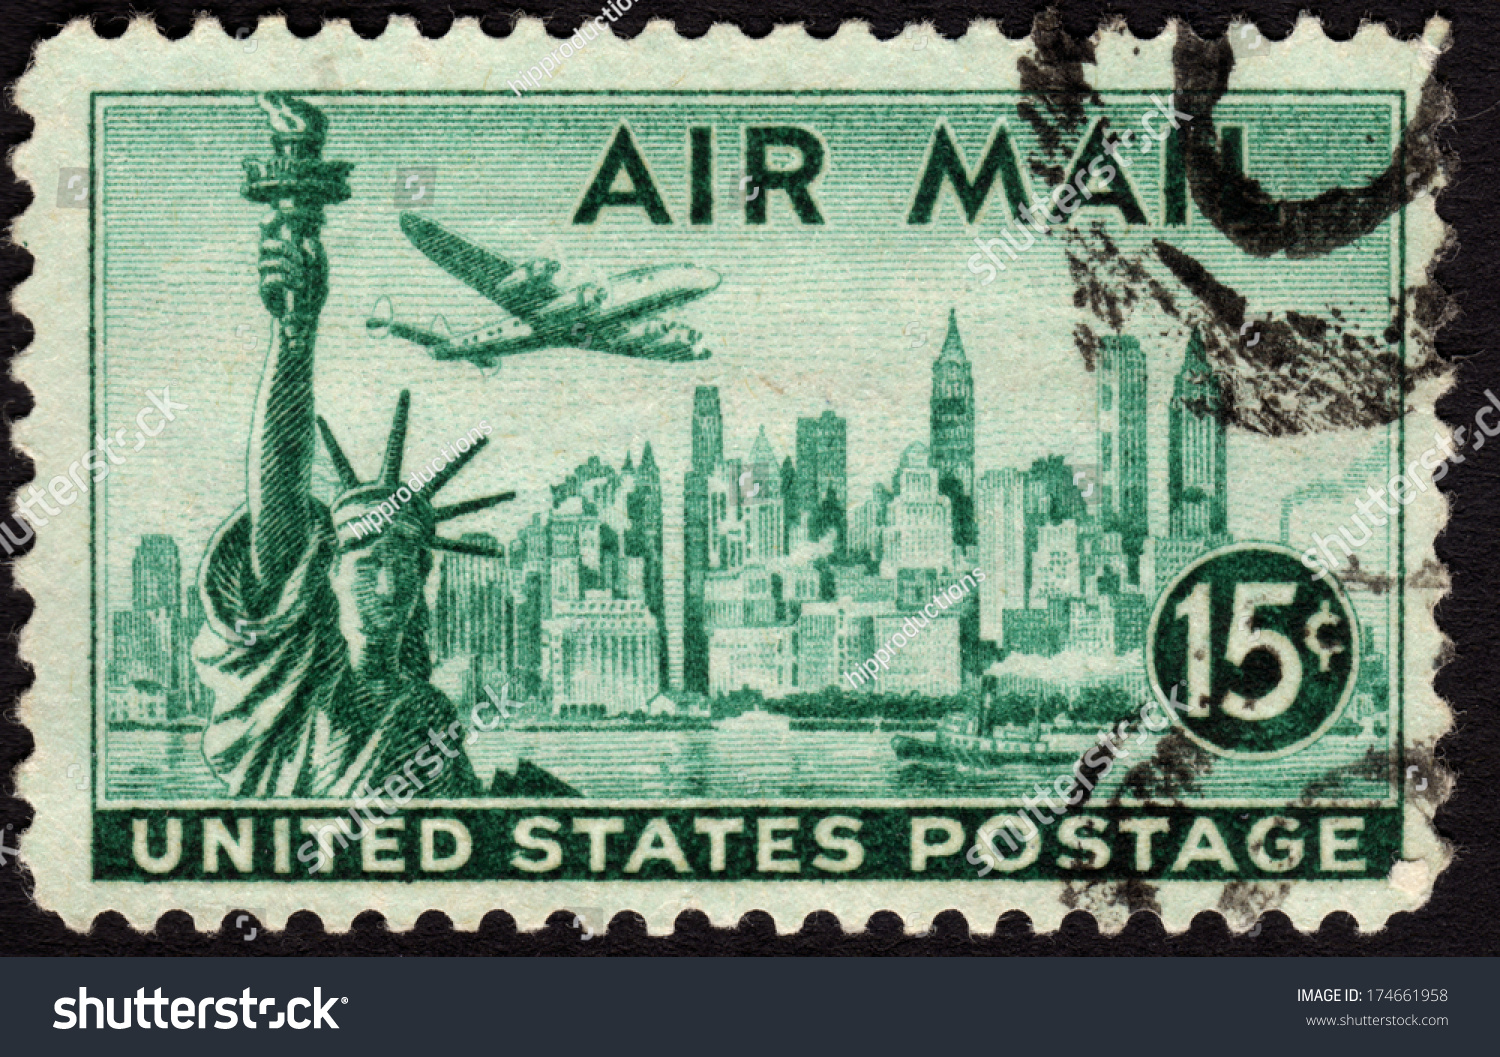 1947 United States Postage Stamp In The Value Of 15c Used